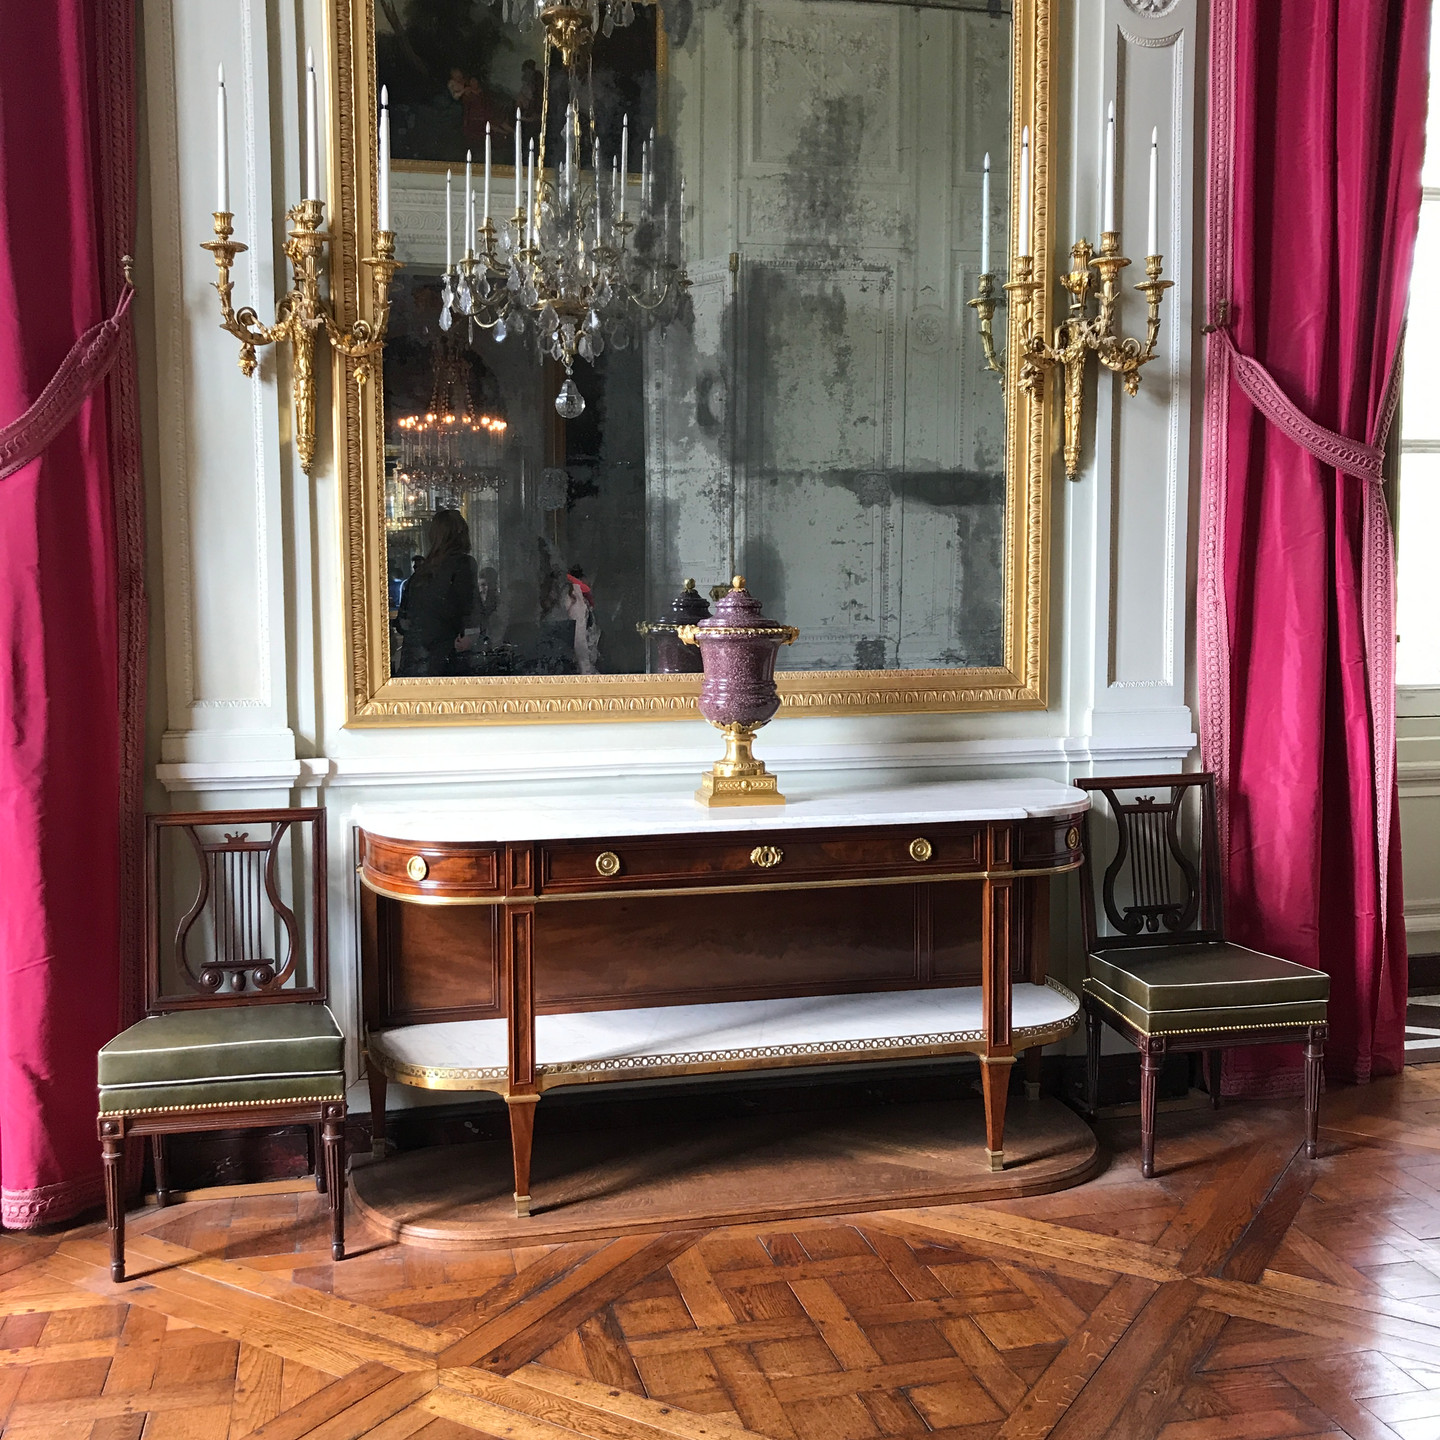 Sideboard and Chairs with Oversized Mirror at Versailles